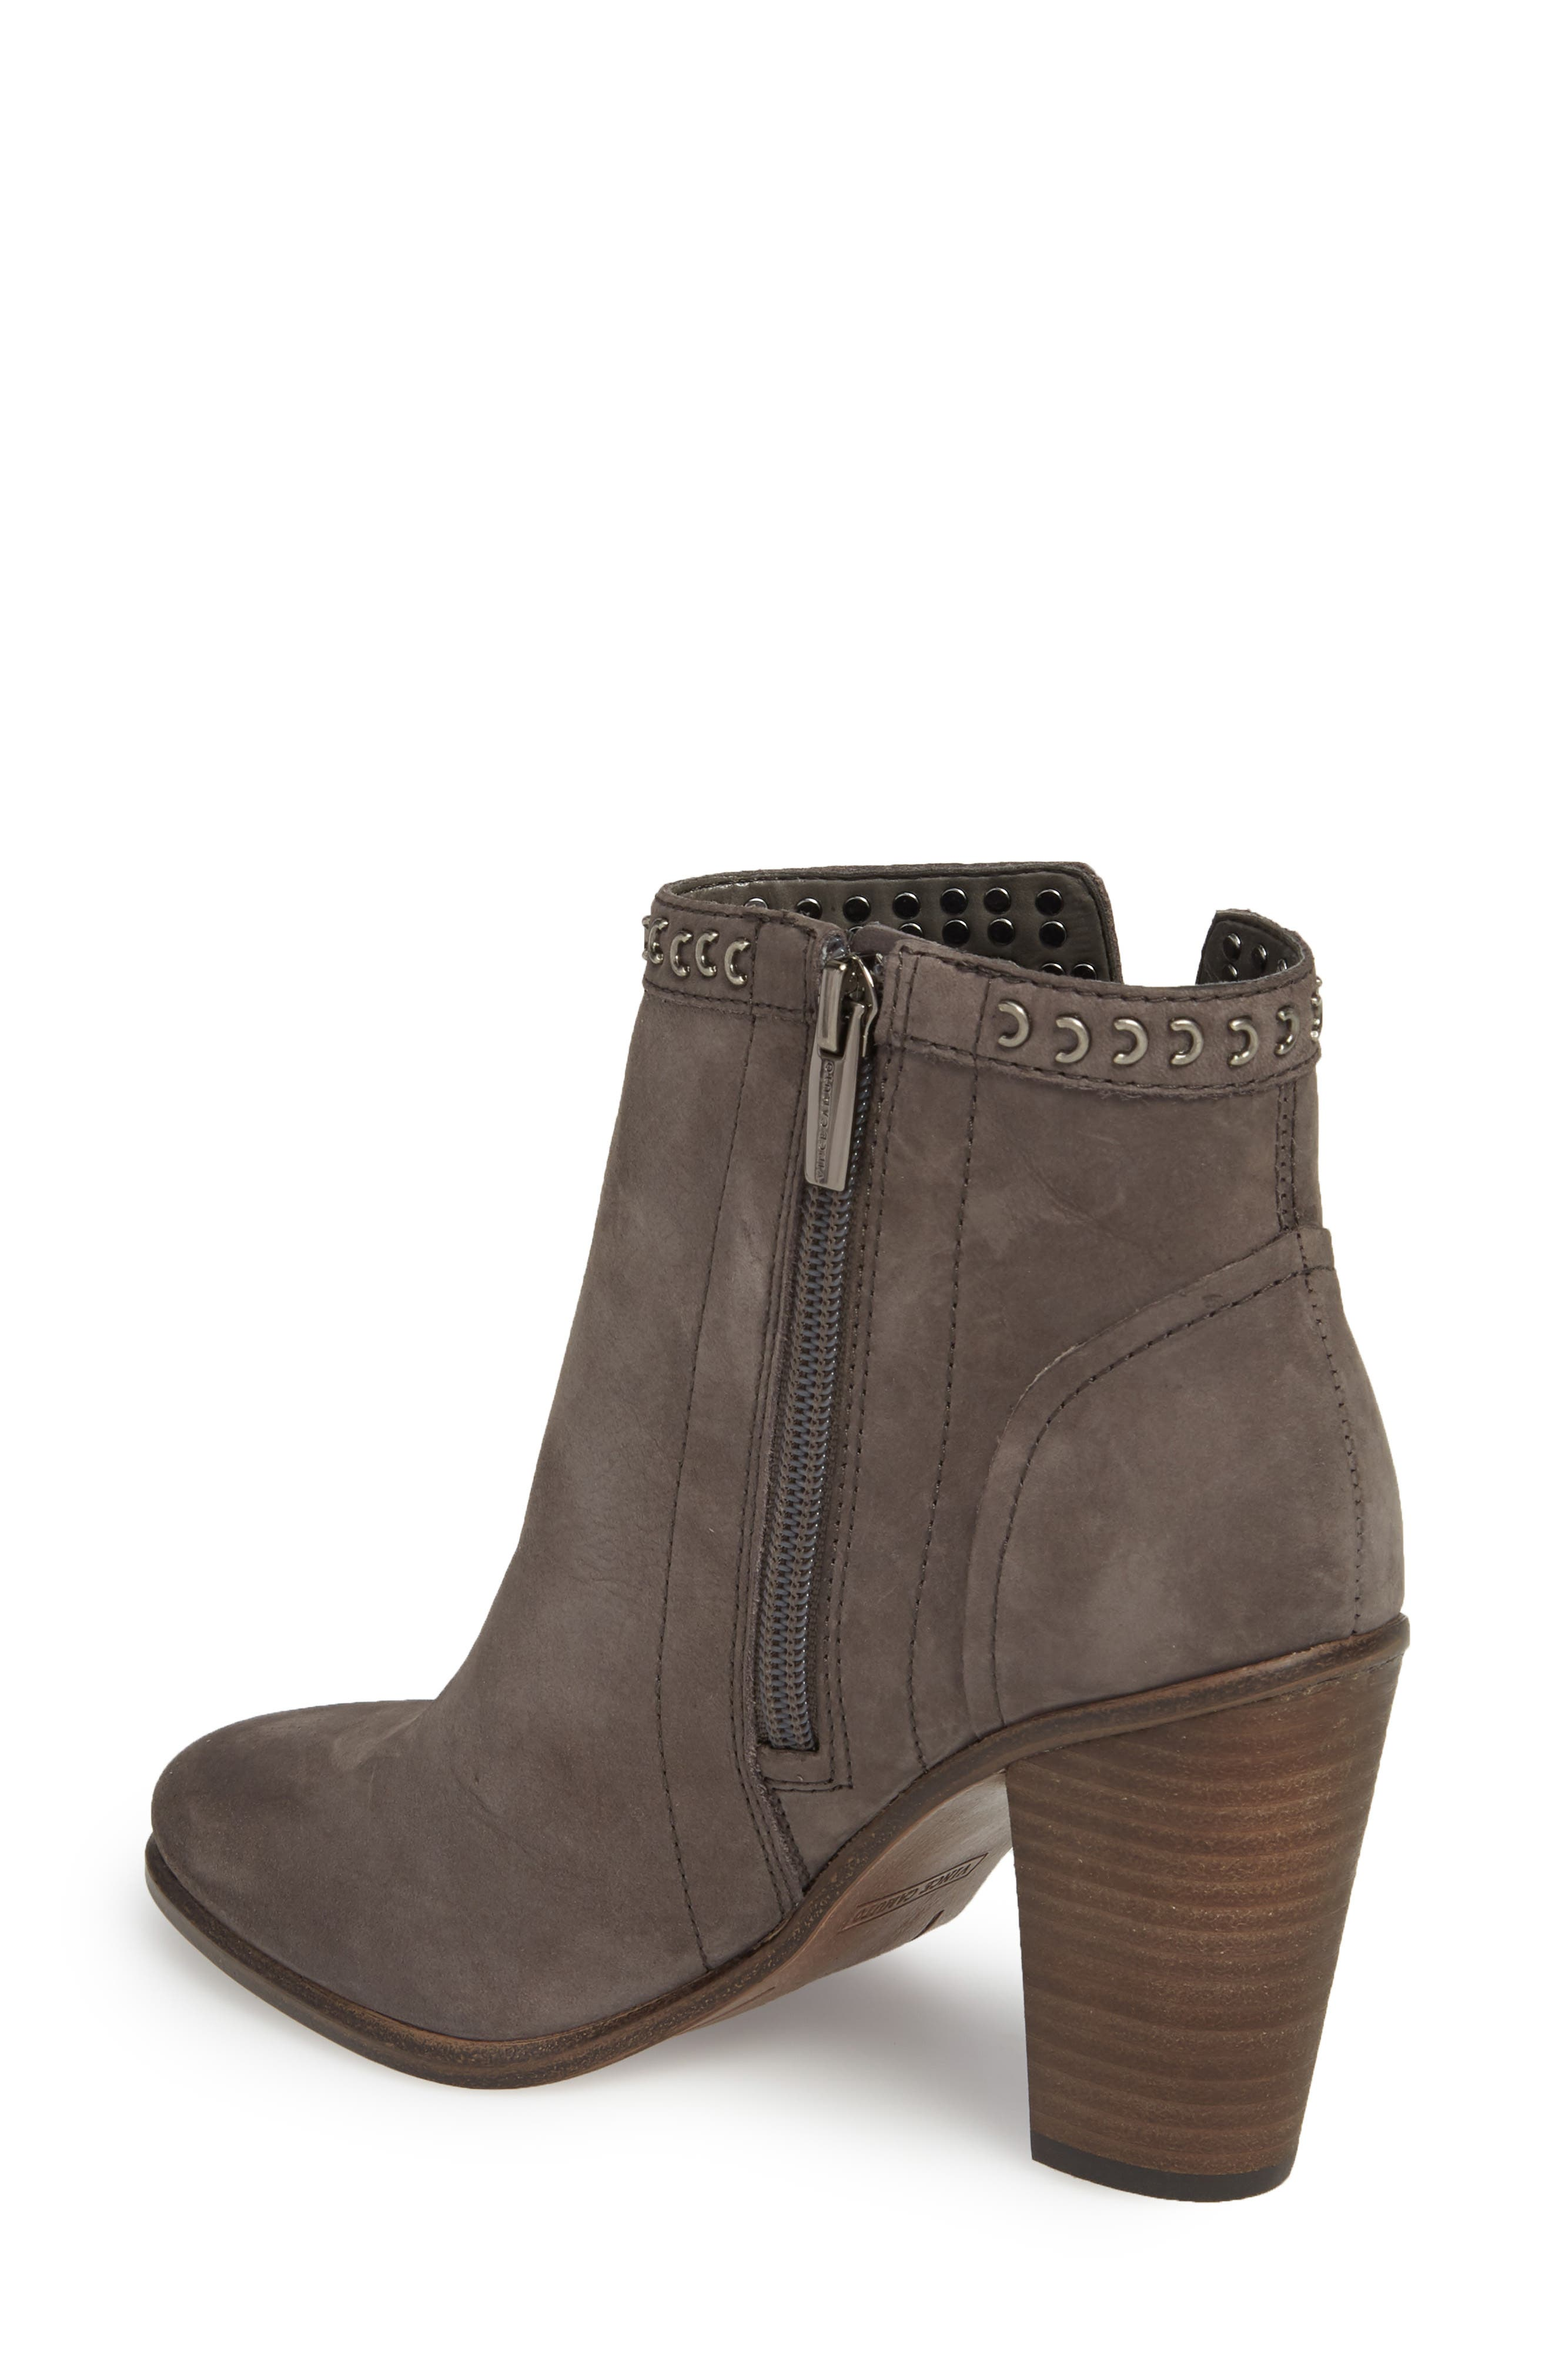 Finchie Bootie,                             Alternate thumbnail 2, color,                             Greystone Leather